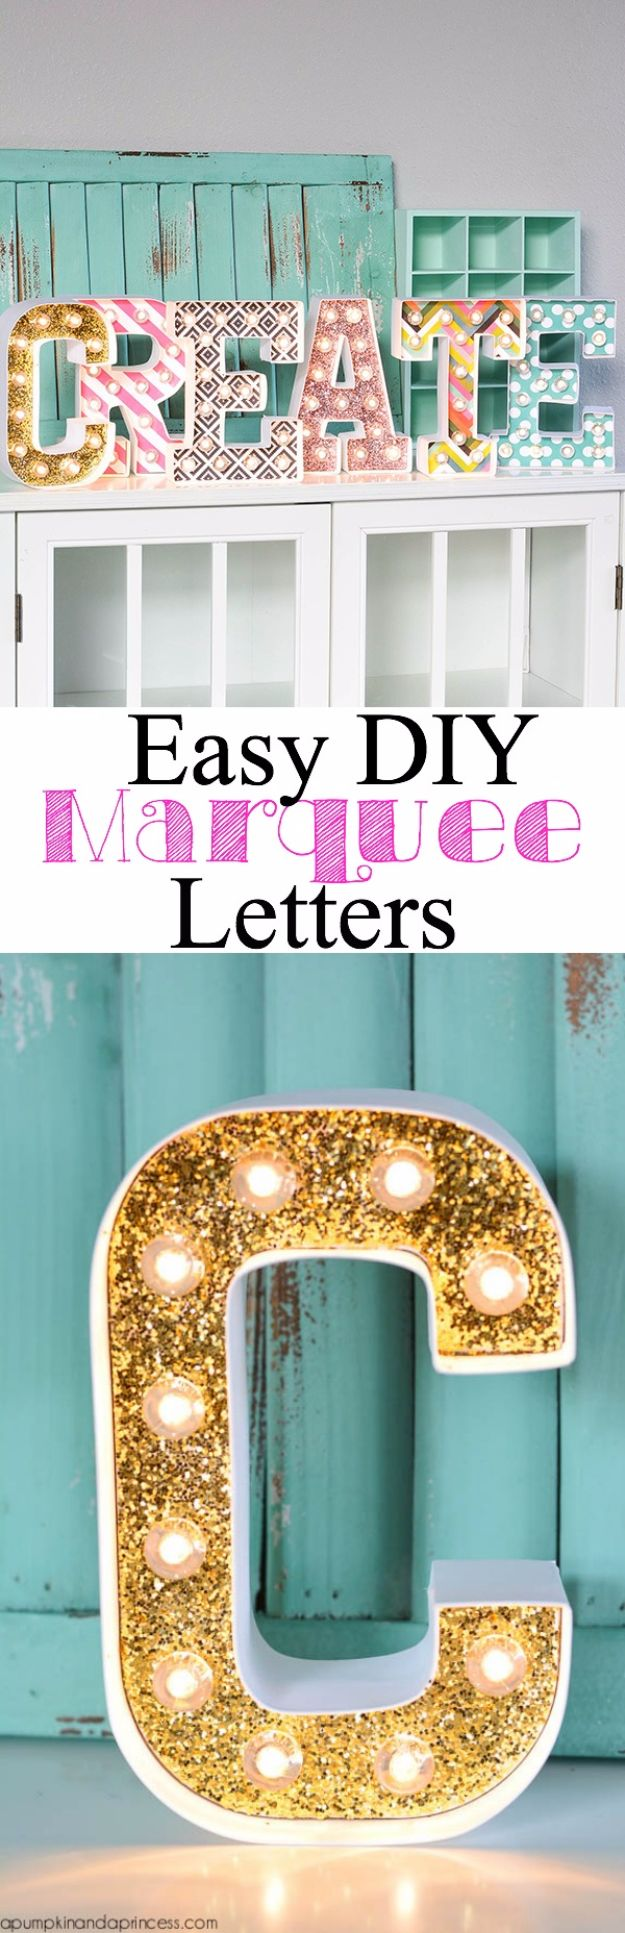 DIY Wall Letters and Word Signs - DIY Marquee Letters - Initials Wall Art for Creative Home Decor Ideas - Cool Architectural Letter Projects and Wall Art Tutorials for Living Room Decor, Bedroom Ideas. Girl or Boy Nursery. Paint, Glitter, String Art, Easy Cardboard and Rustic Wooden Ideas - DIY Projects and Crafts by DIY JOY #diysigns #diyideas #diyhomedecor